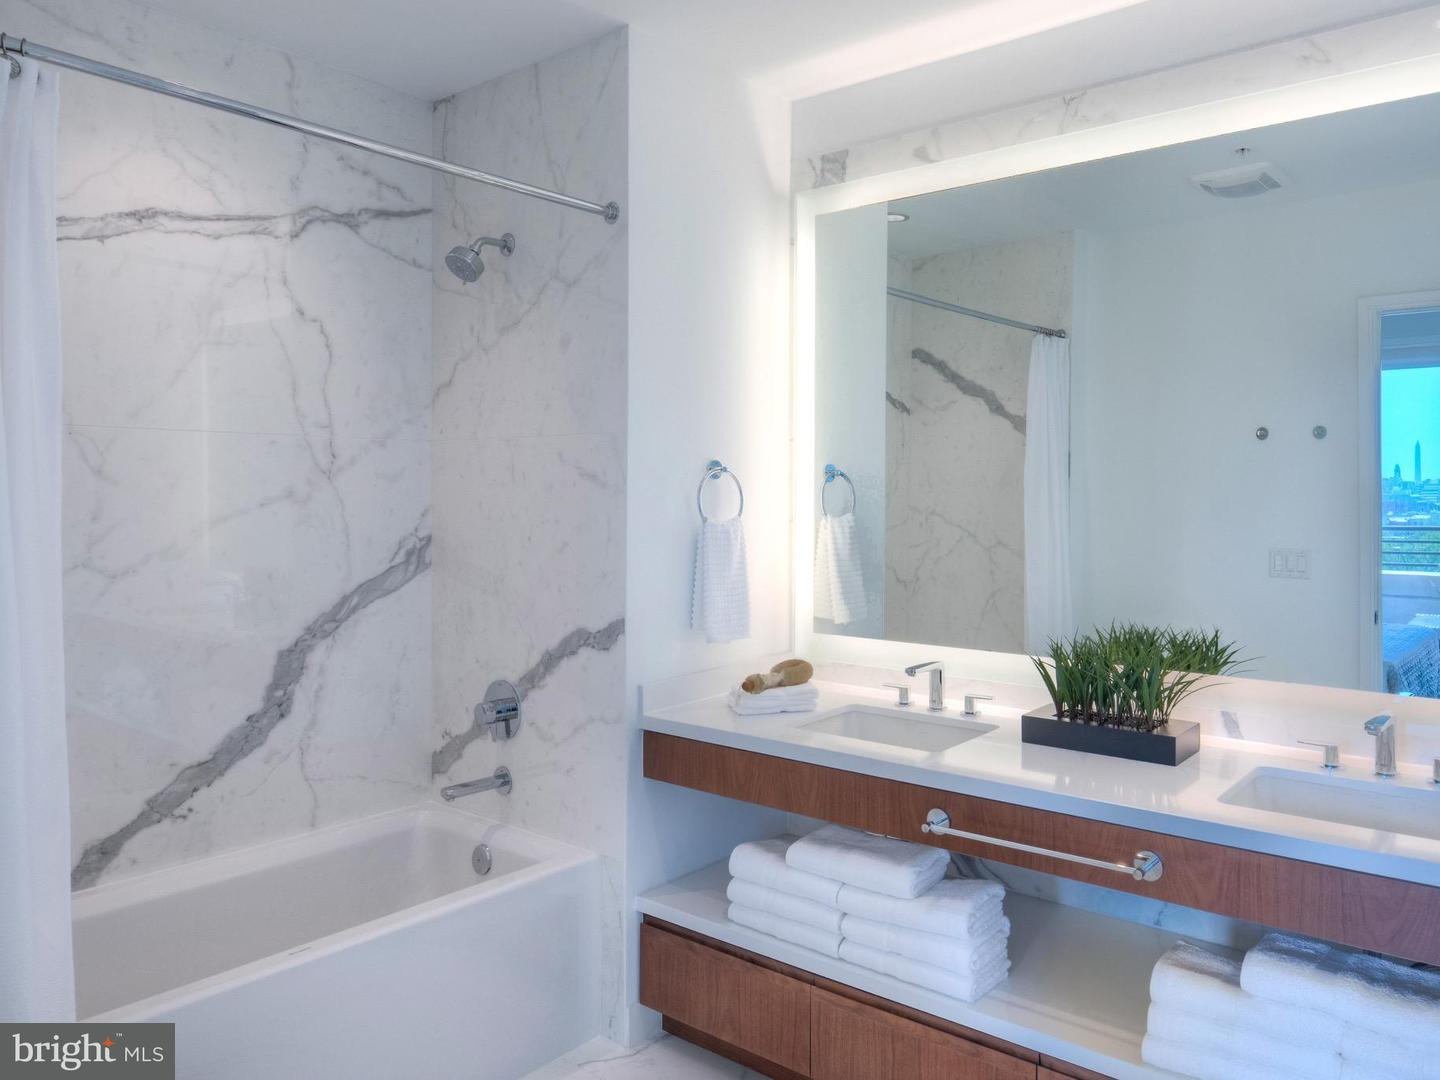 Additional photo for property listing at 1310 U St NW #712  Washington, District Of Columbia 20009 United States